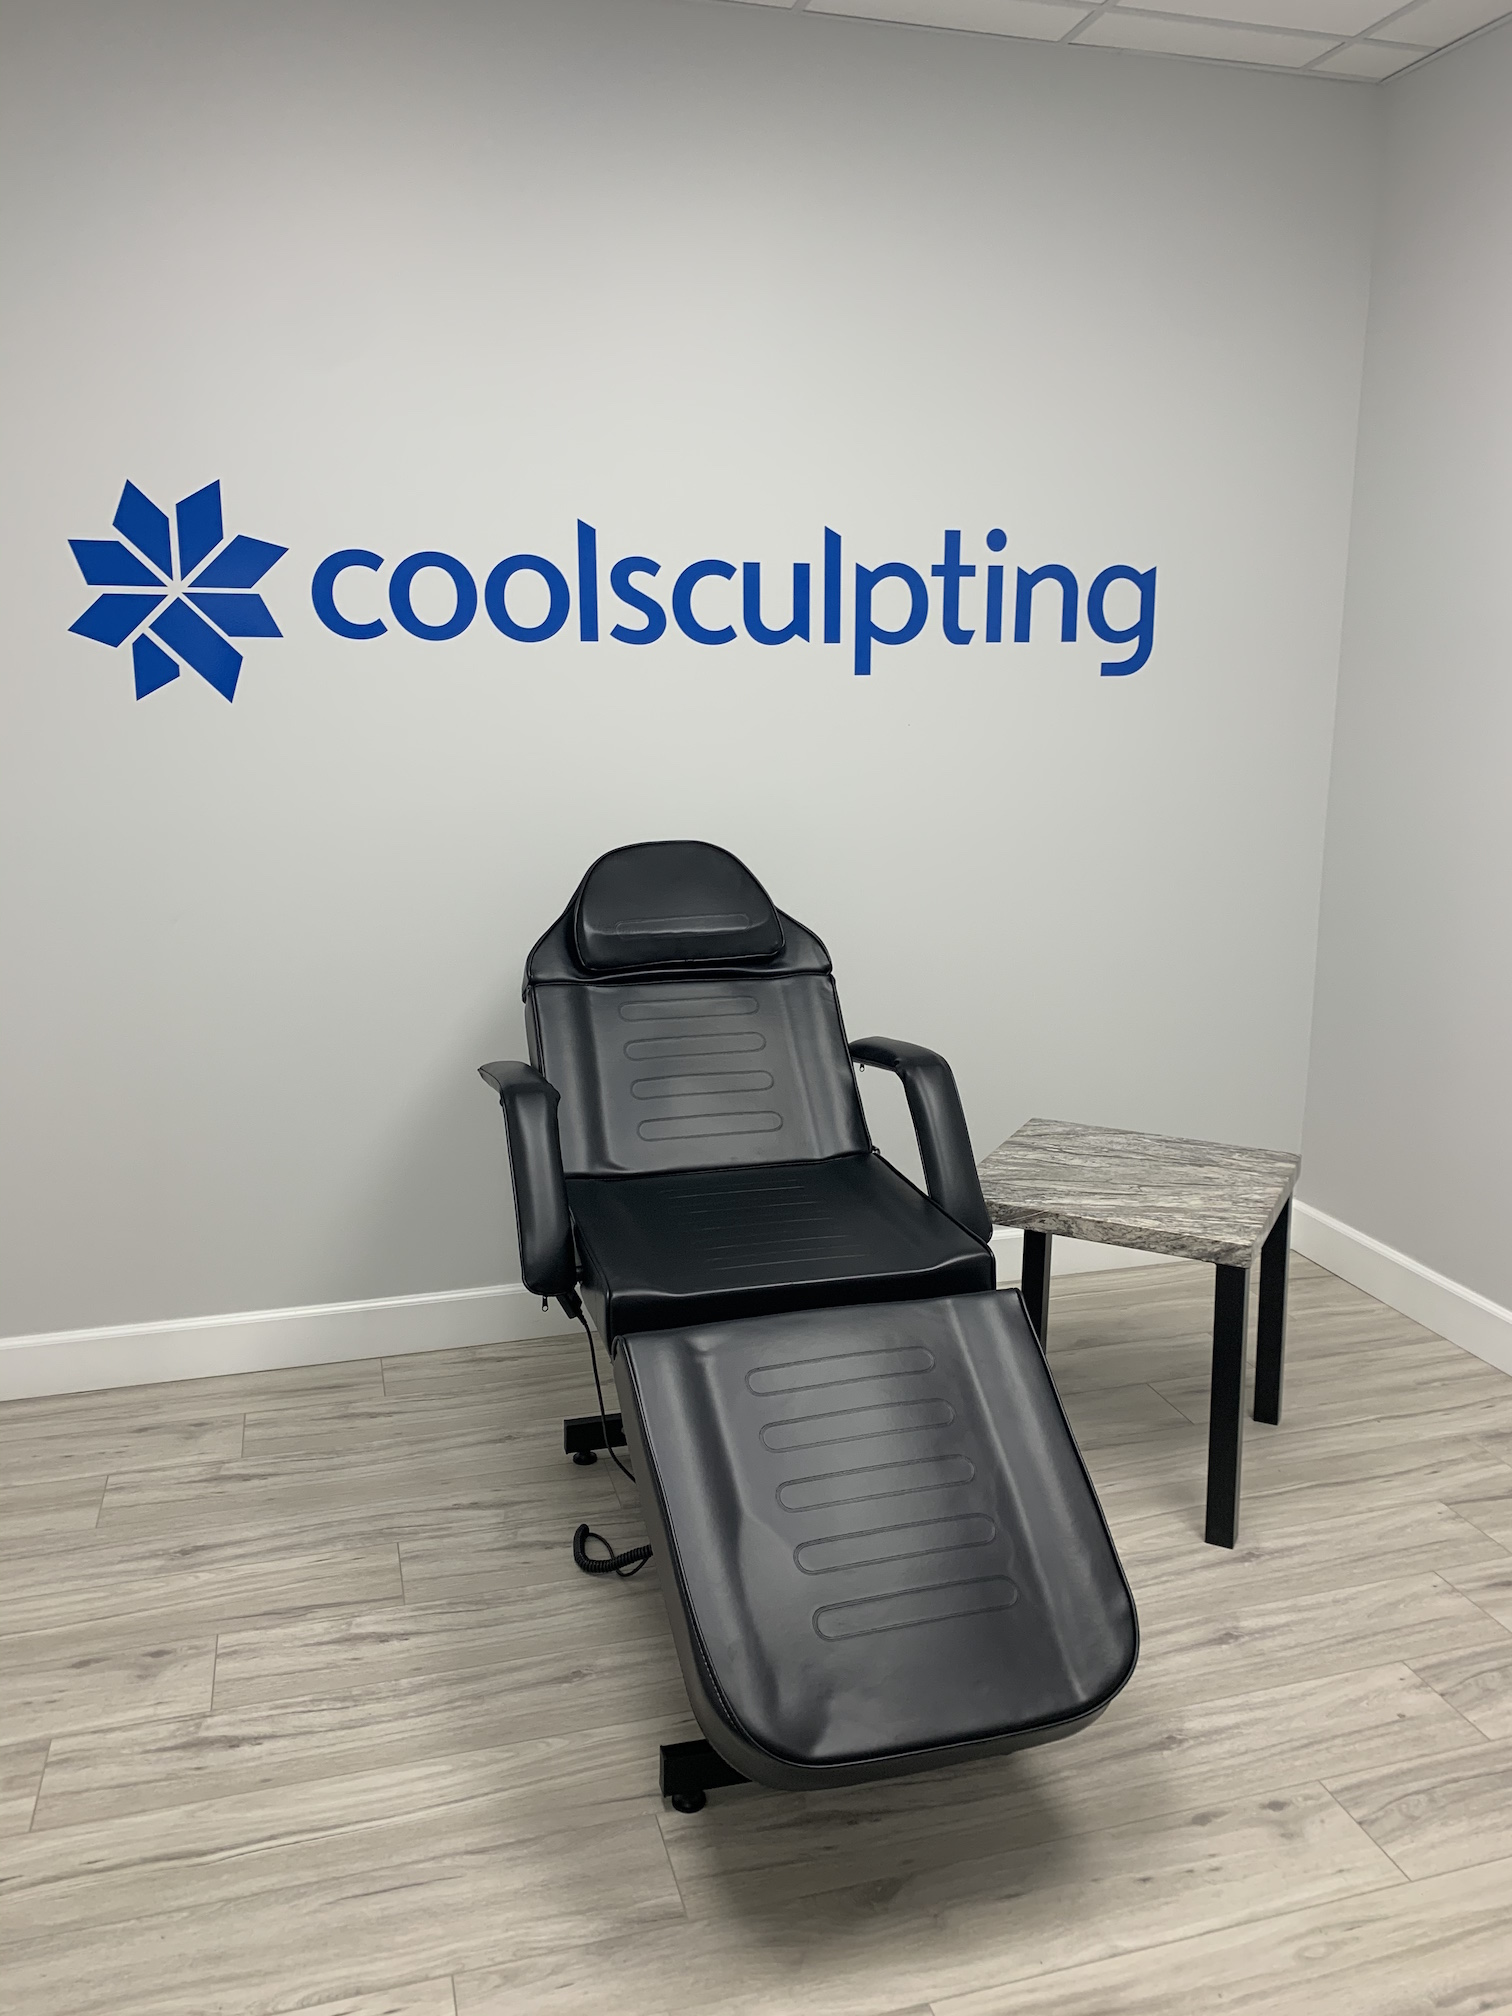 coolscultping-whittier-southbaymedspa